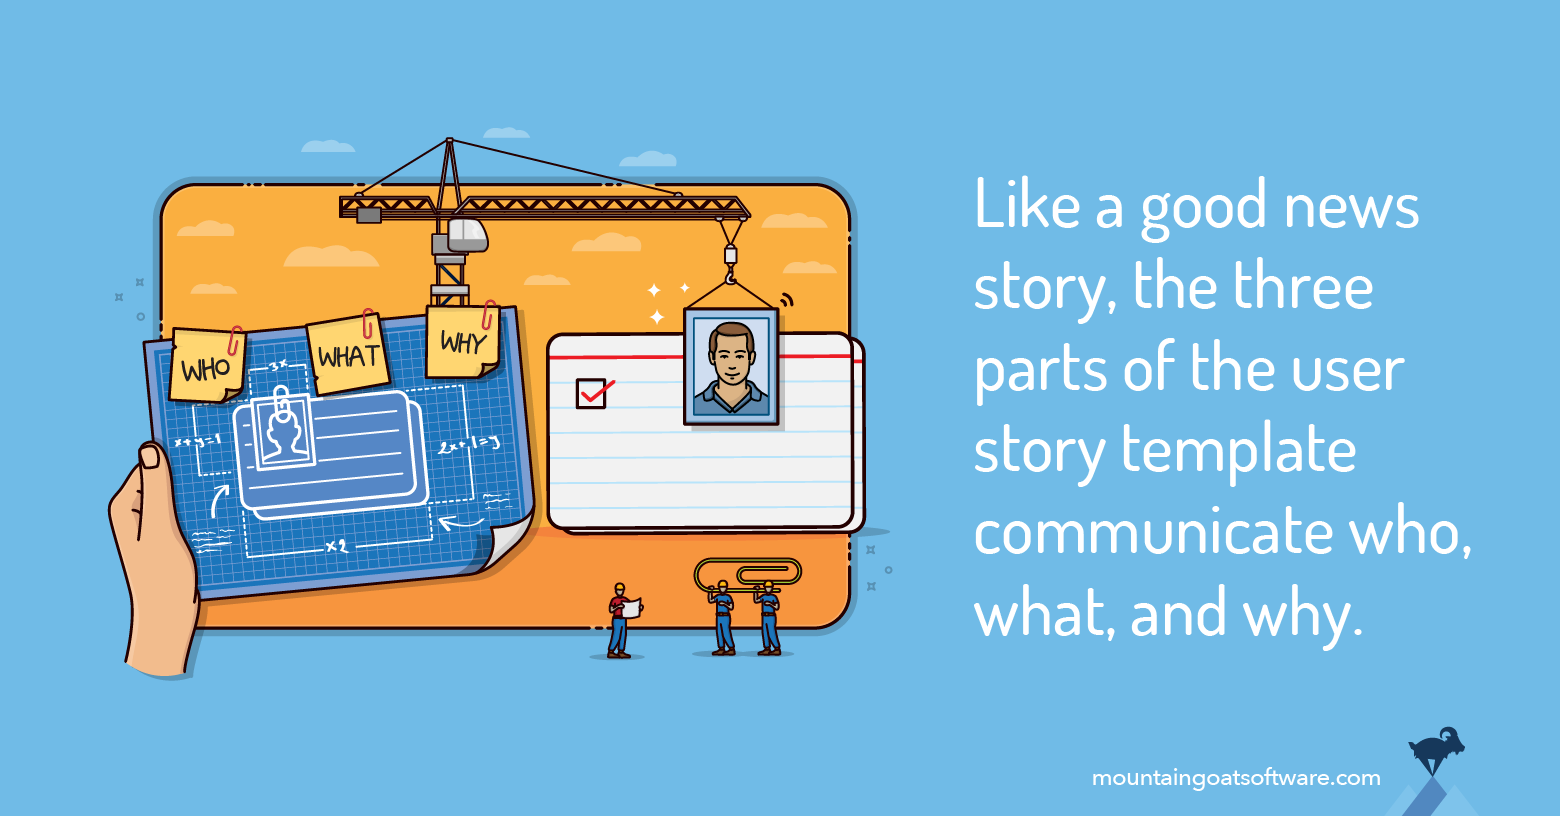 Why the Three-Part User Story Template Works So Well